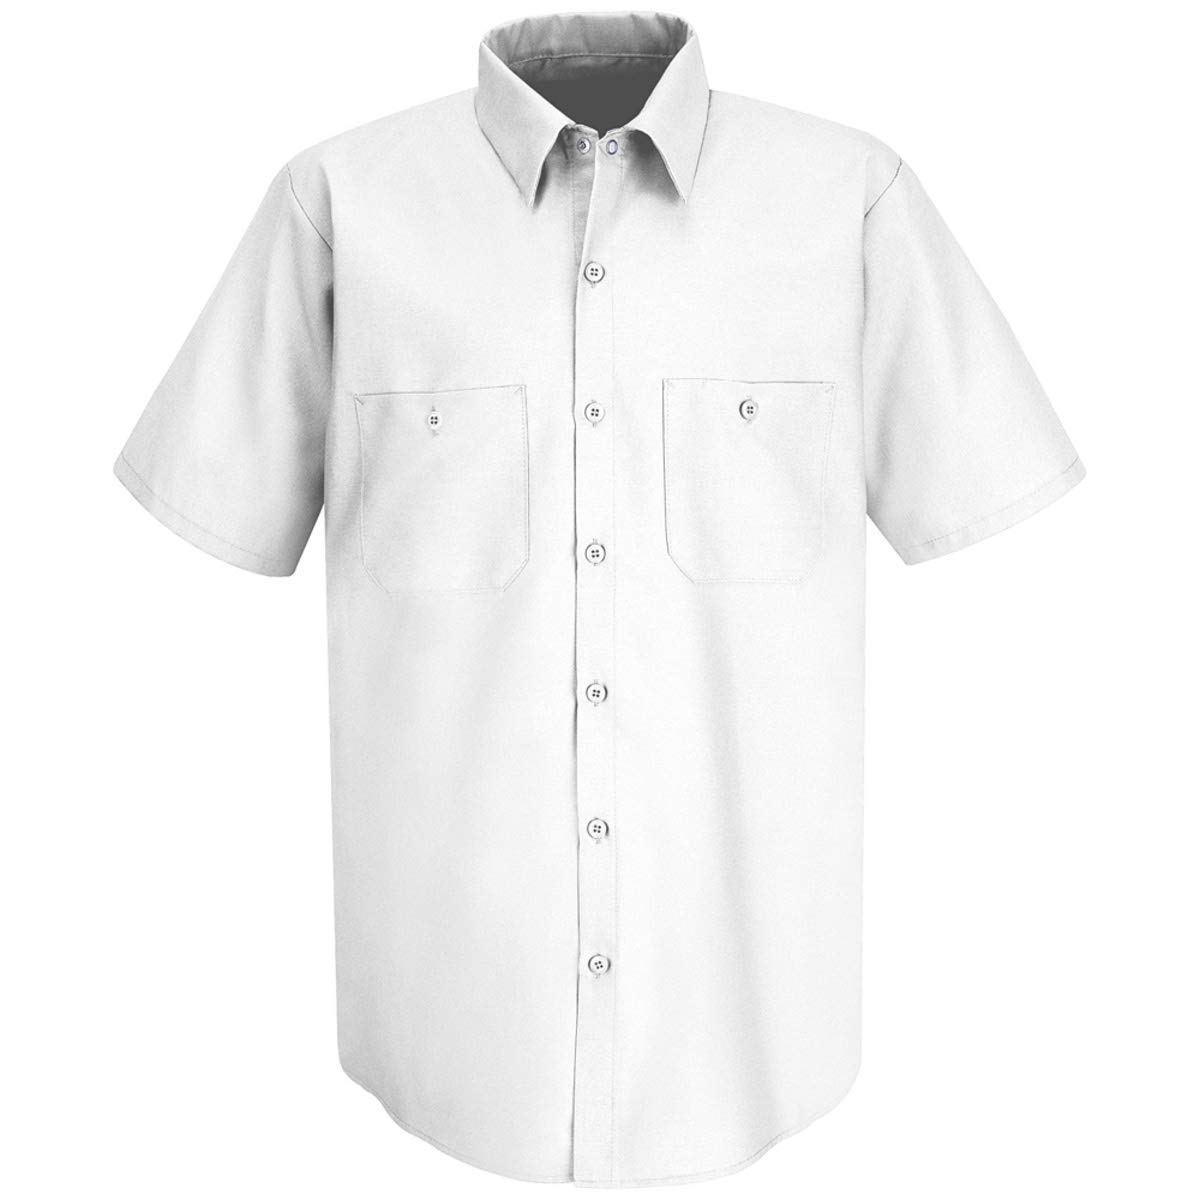 Red Kap 2X White 4.25 Ounce Polyester/Cotton Shirt With Button Closure